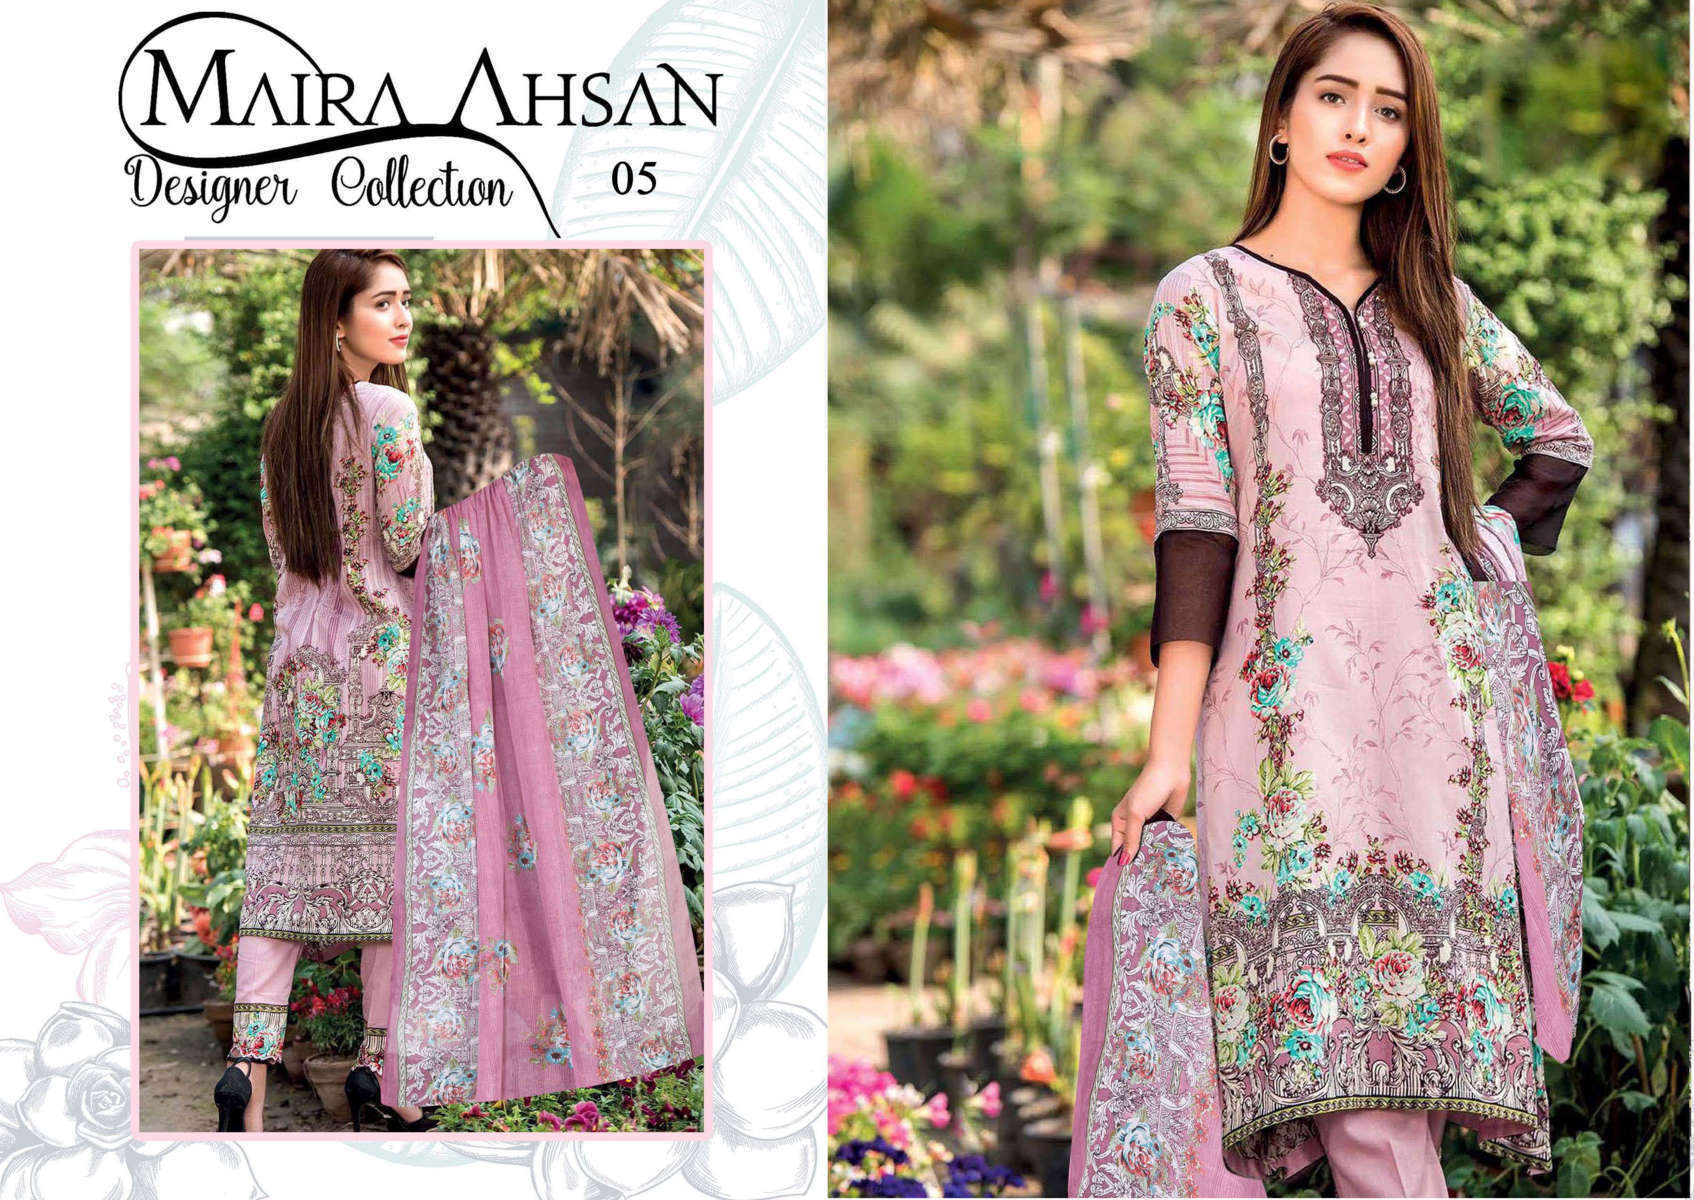 Maira Ahsan Designer Collection Vol 1 Salwar Suit Wholesale Catalog 10 Pcs 8 - Maira Ahsan Designer Collection Vol 1 Salwar Suit Wholesale Catalog 10 Pcs